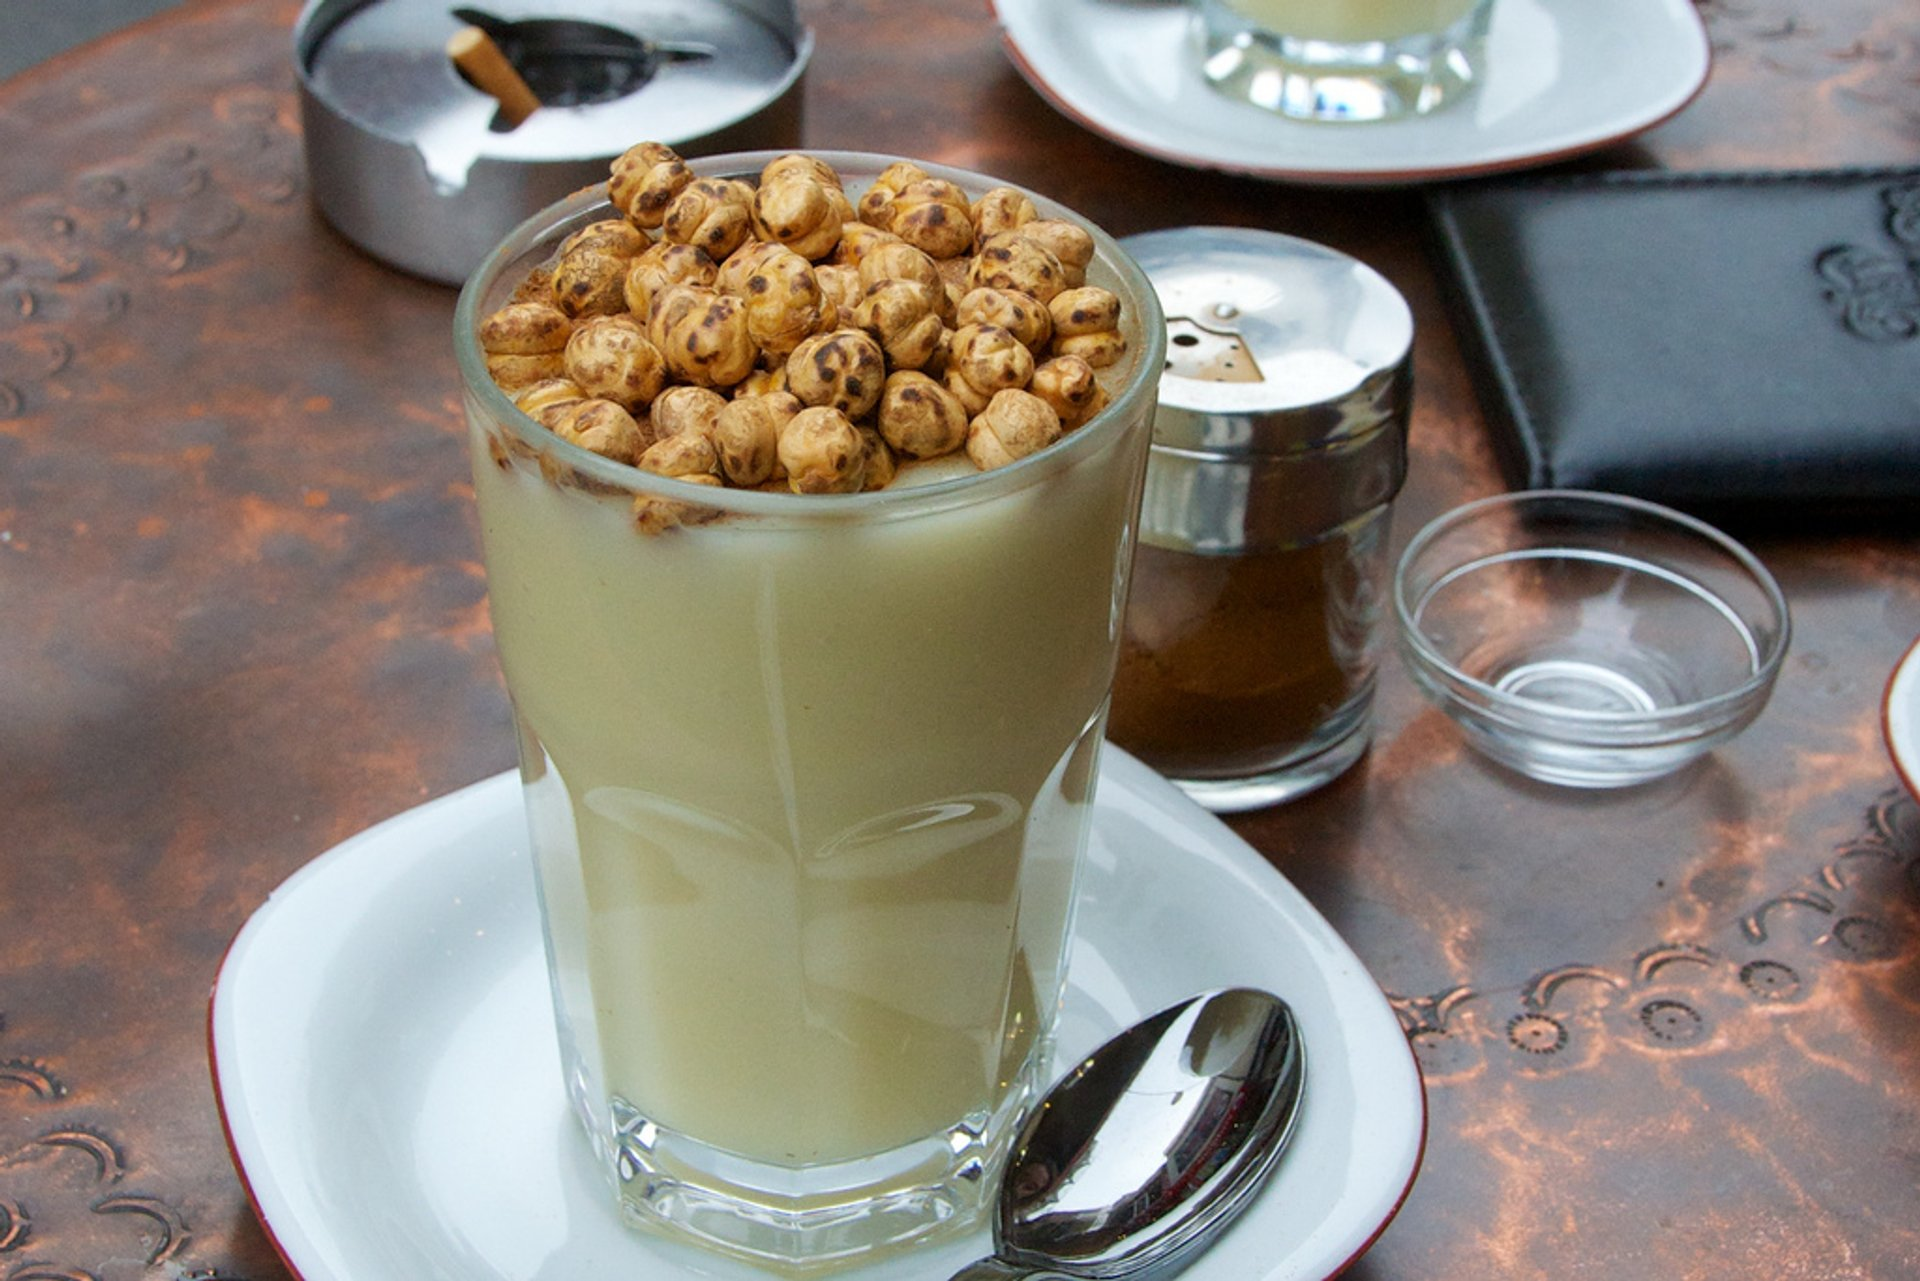 Boza in Istanbul 2020 - Best Time